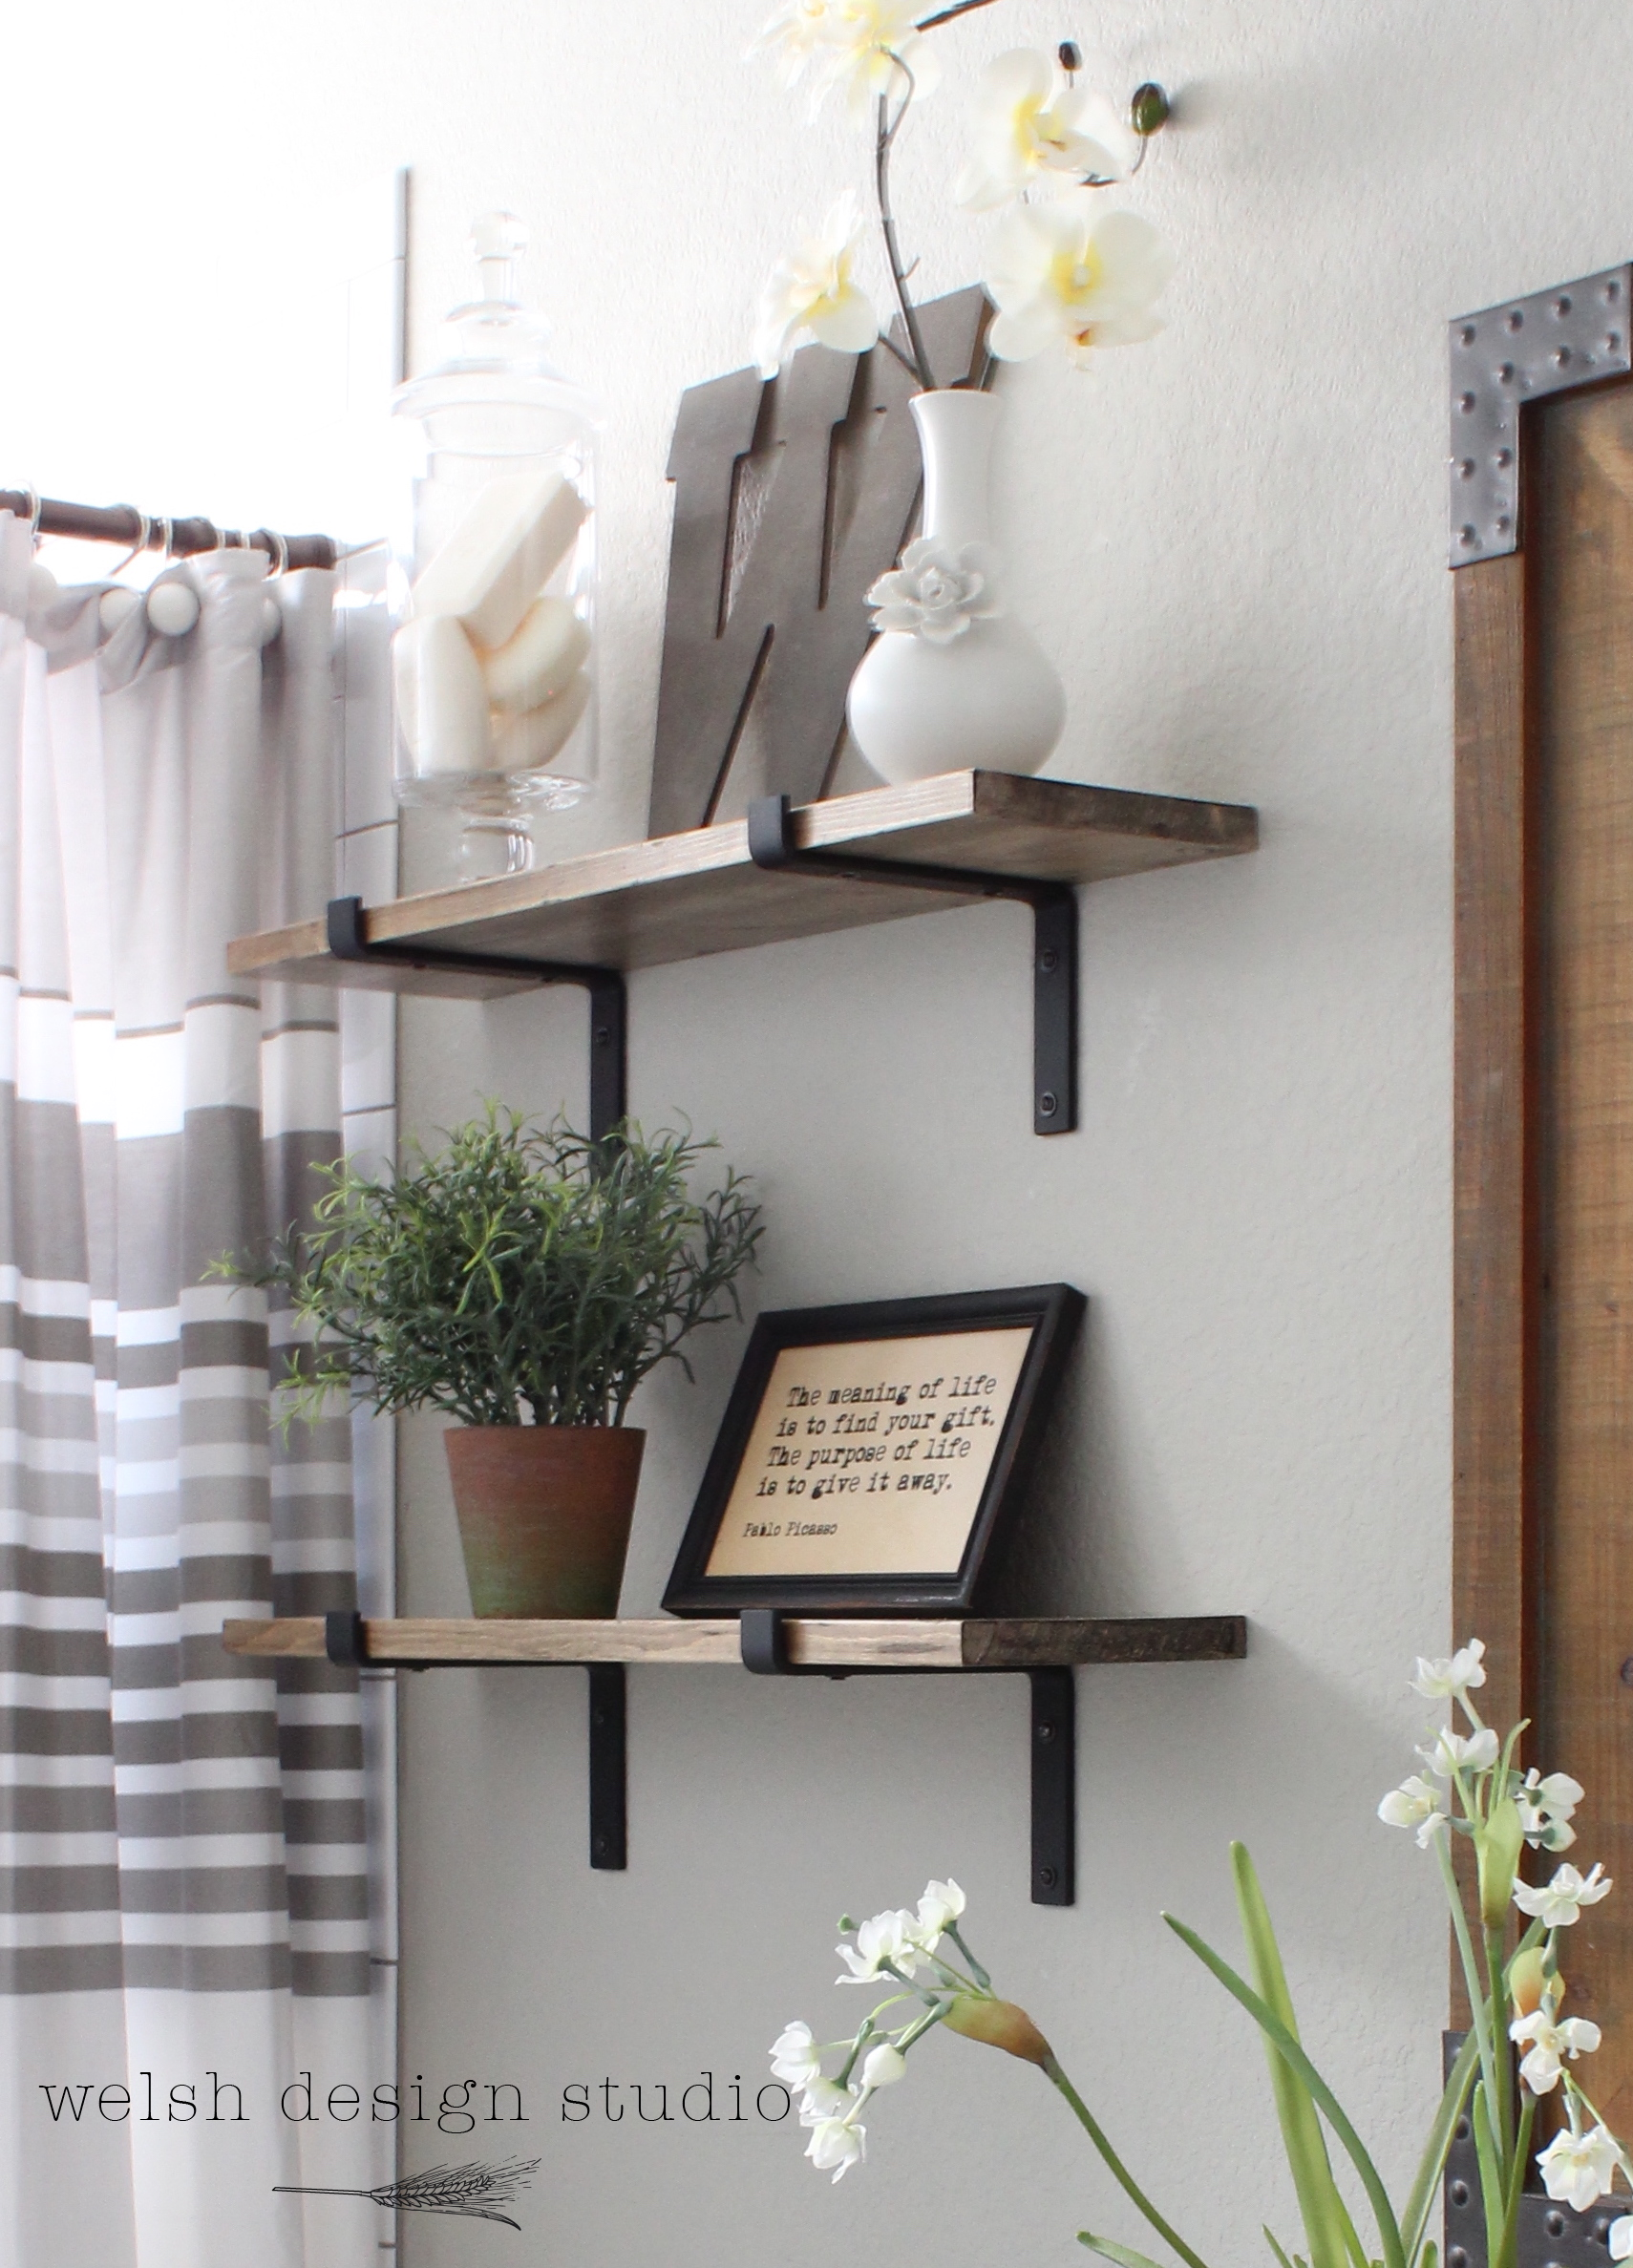 diy industrial shelves for the bathroom – welsh design studio